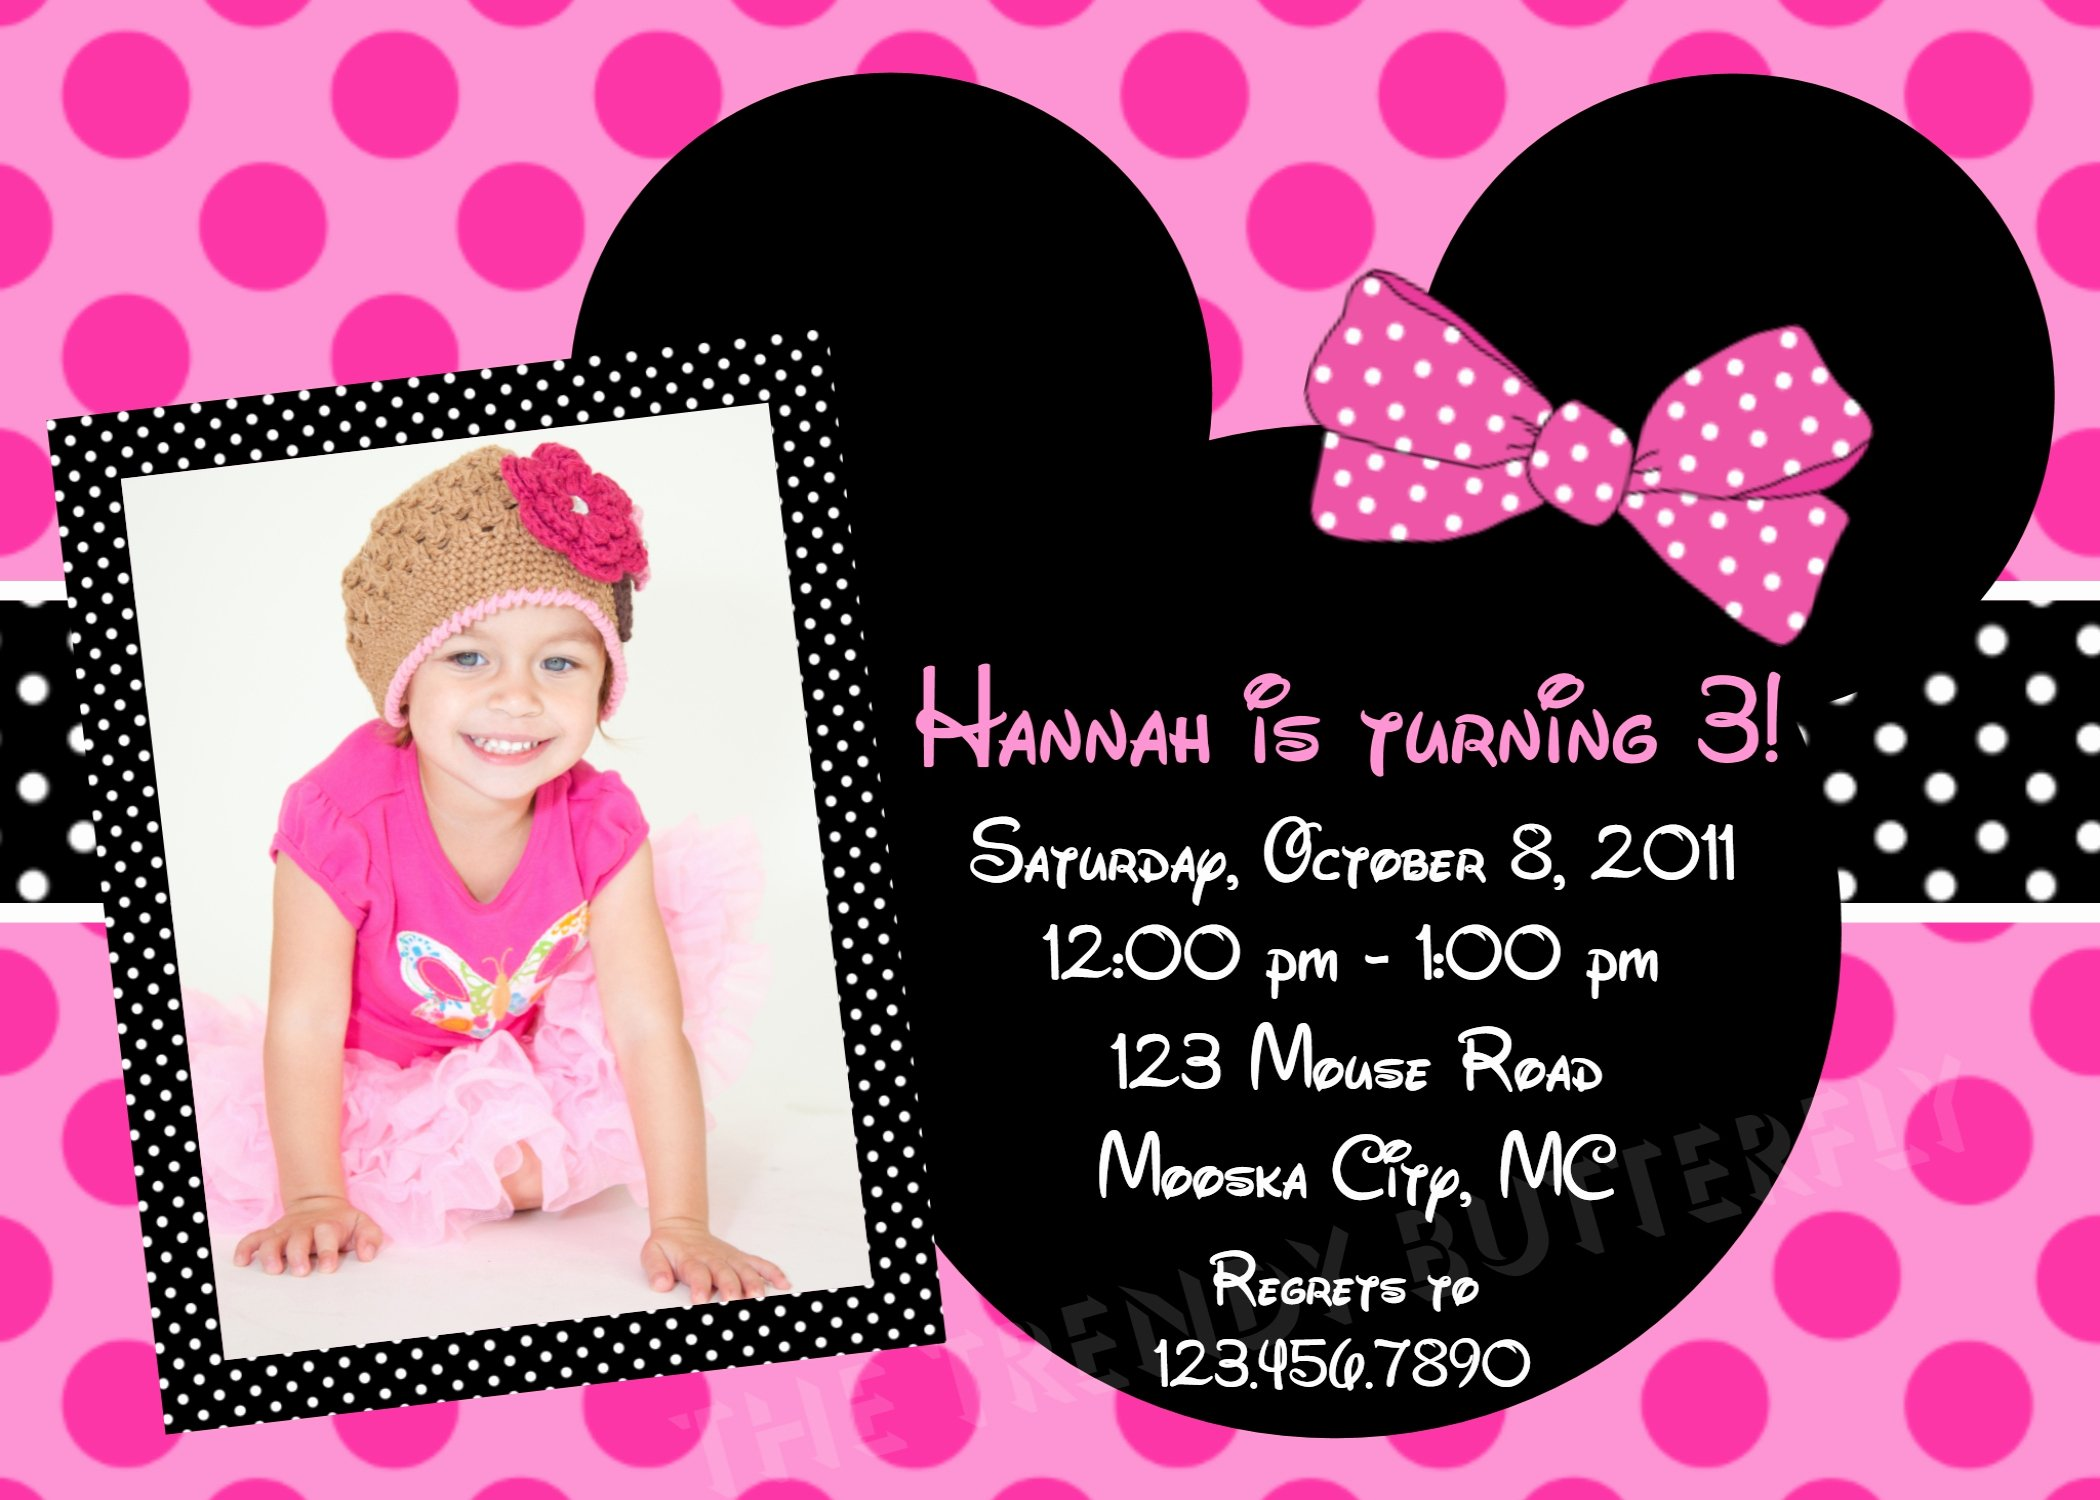 Minnie Mouse Party Invitations Beautiful Birthday Invitations Girls Pink Minnie Mouse Party 1st